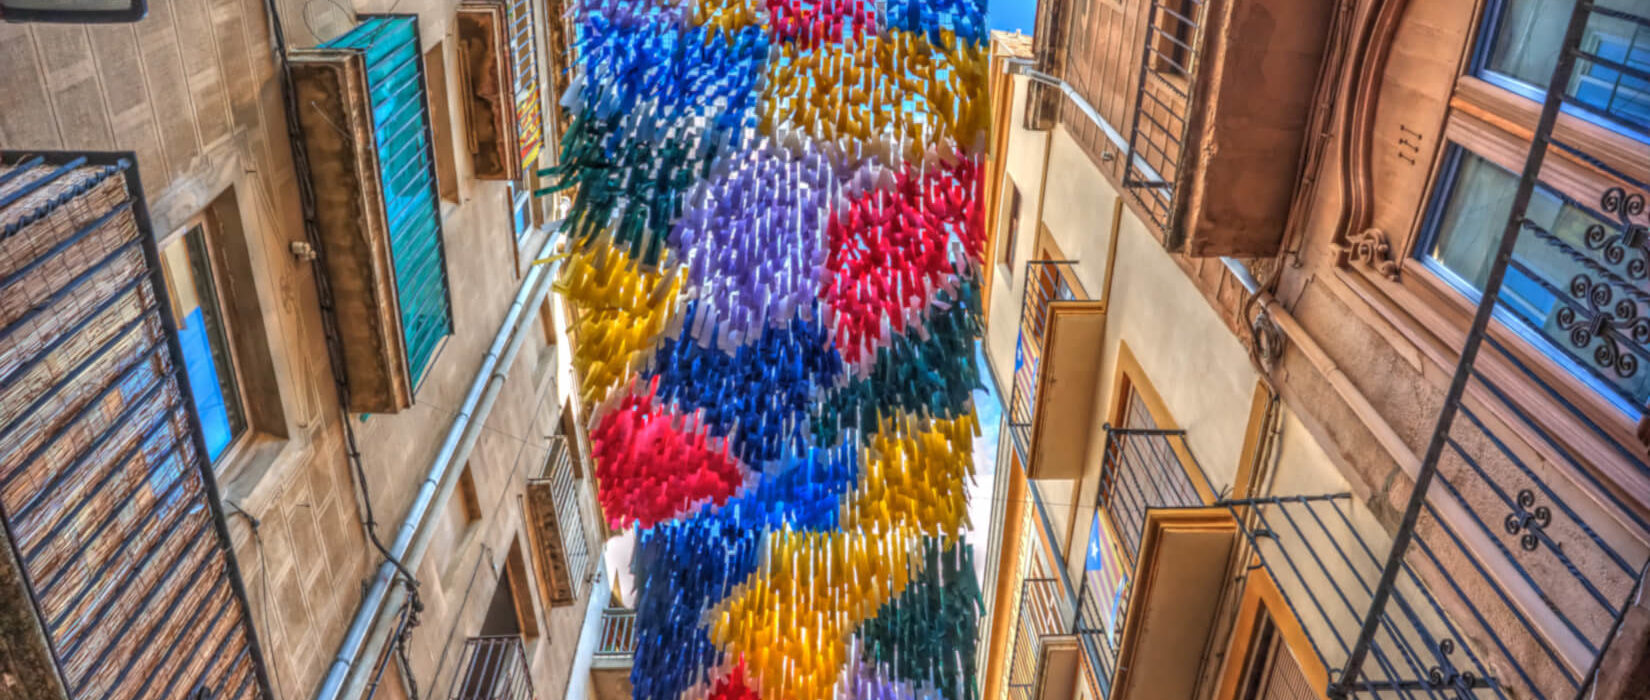 Colourful ribbons aloft during a festival in Spain